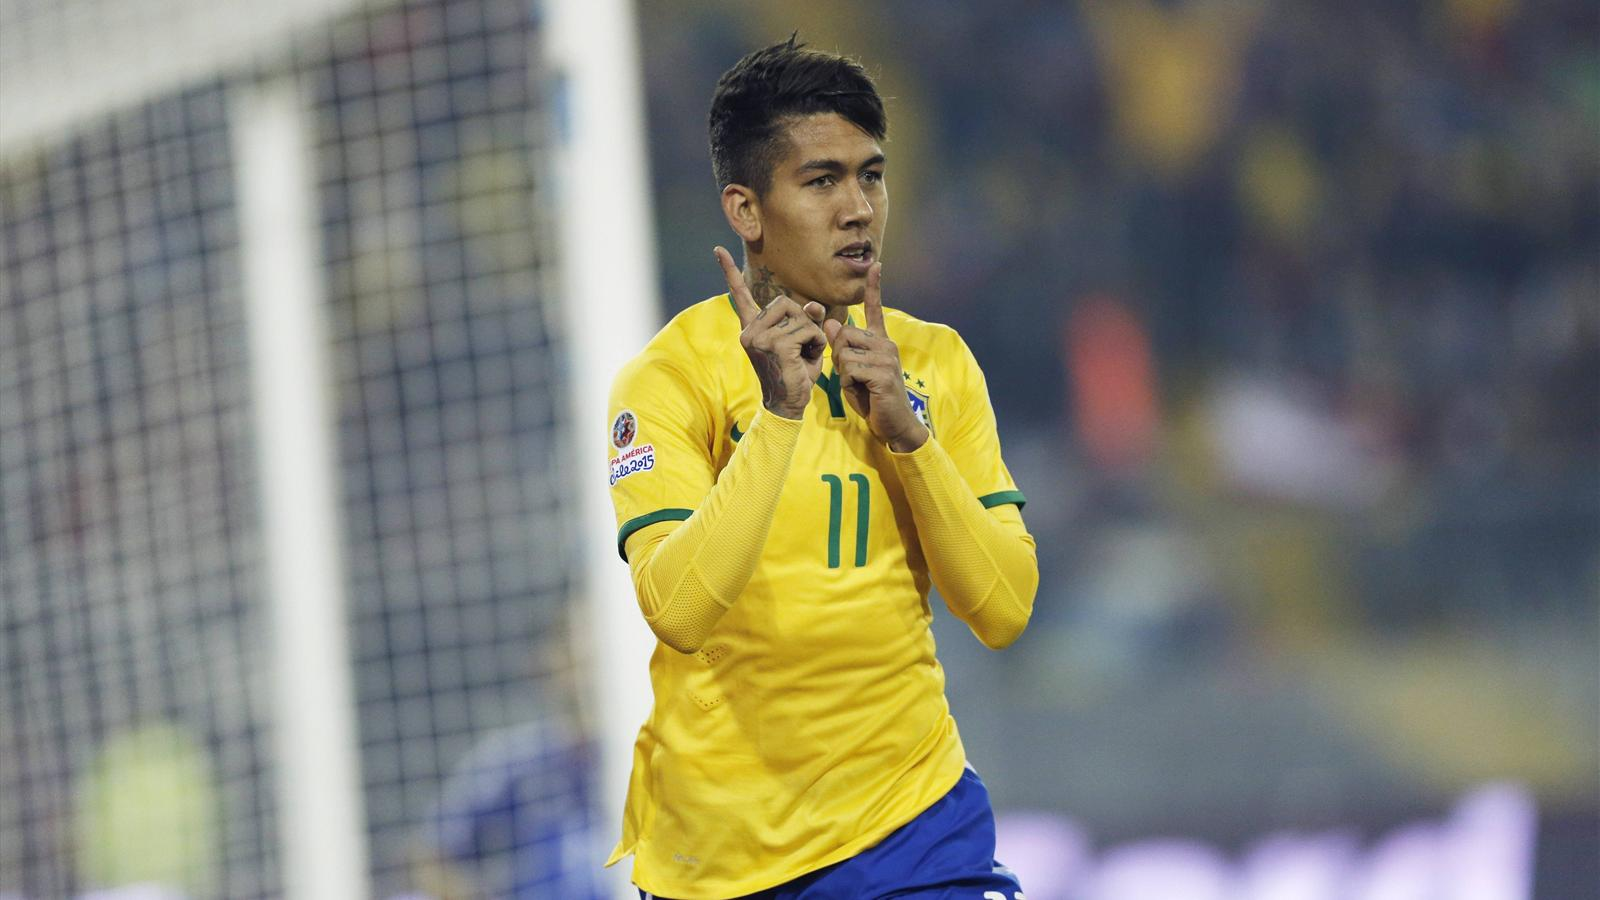 Liverpool Sign Brazil Star Roberto Firmino In £29m Deal